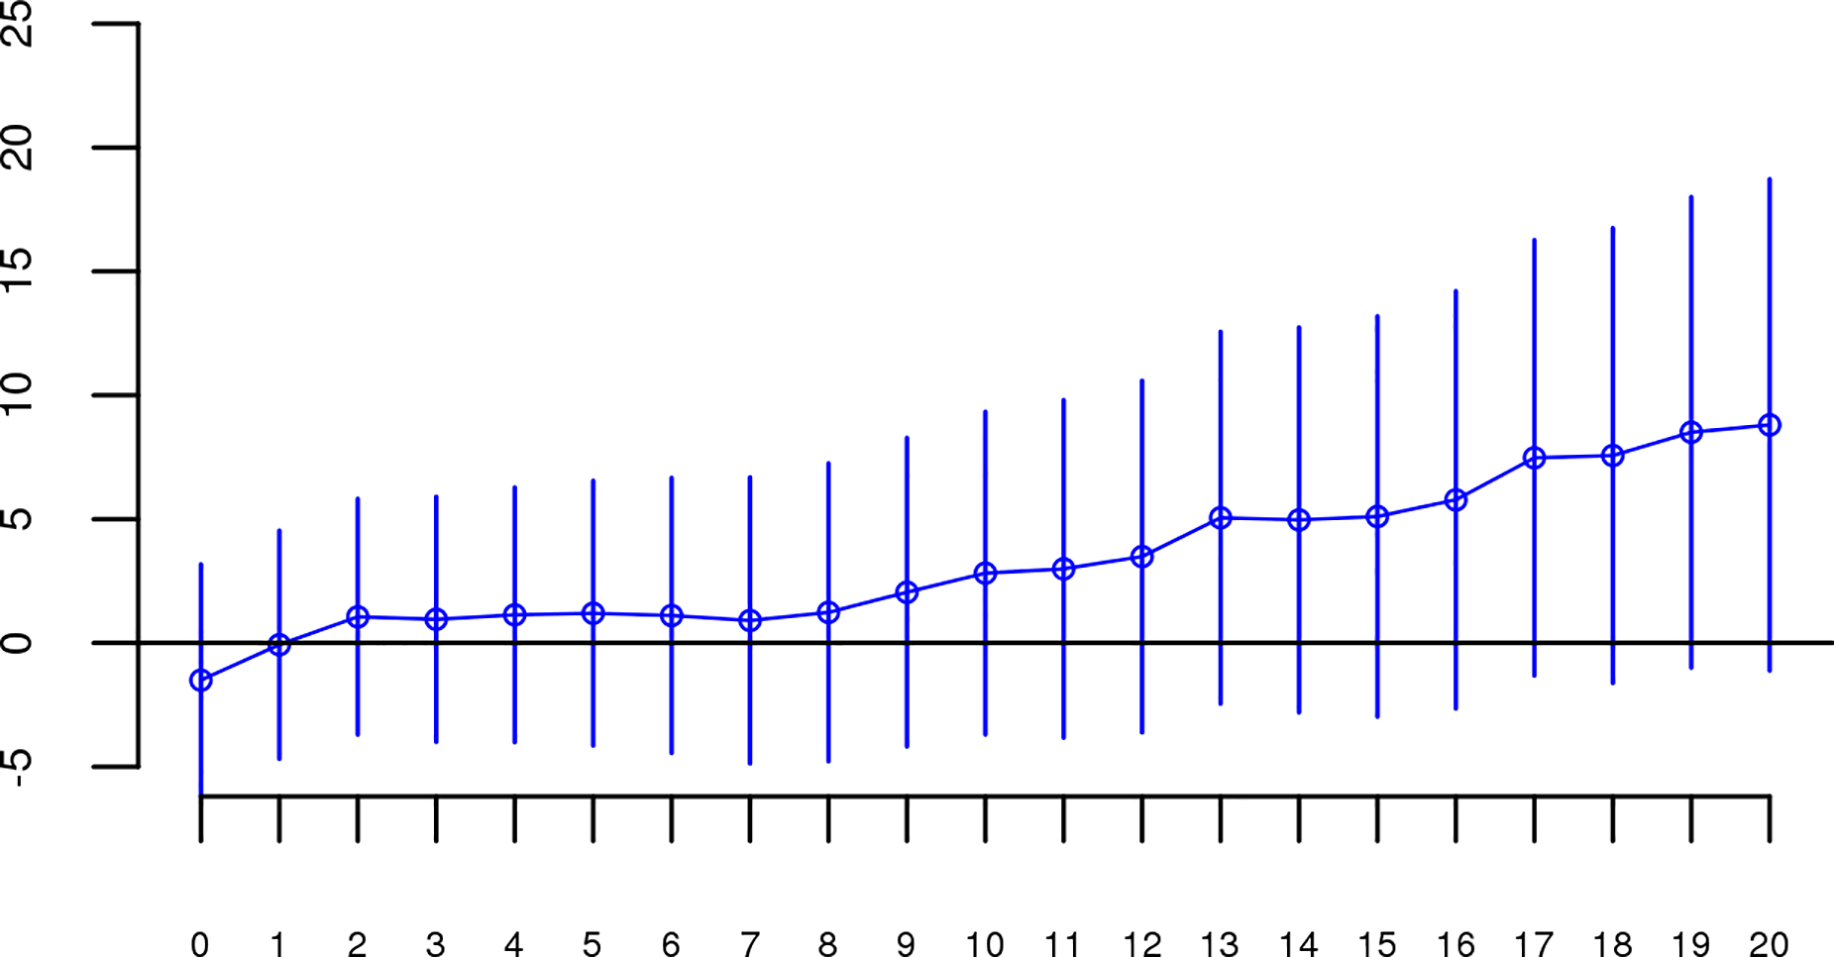 Slope estimates (the change in log odds for a 1% increase in <i>Froh</i>; points) and their 95% confidence intervals (bars) of <i>Froh</i> from unimputed SNP data predicting schizophrenia for different Mb thresholds of calling ROHs.